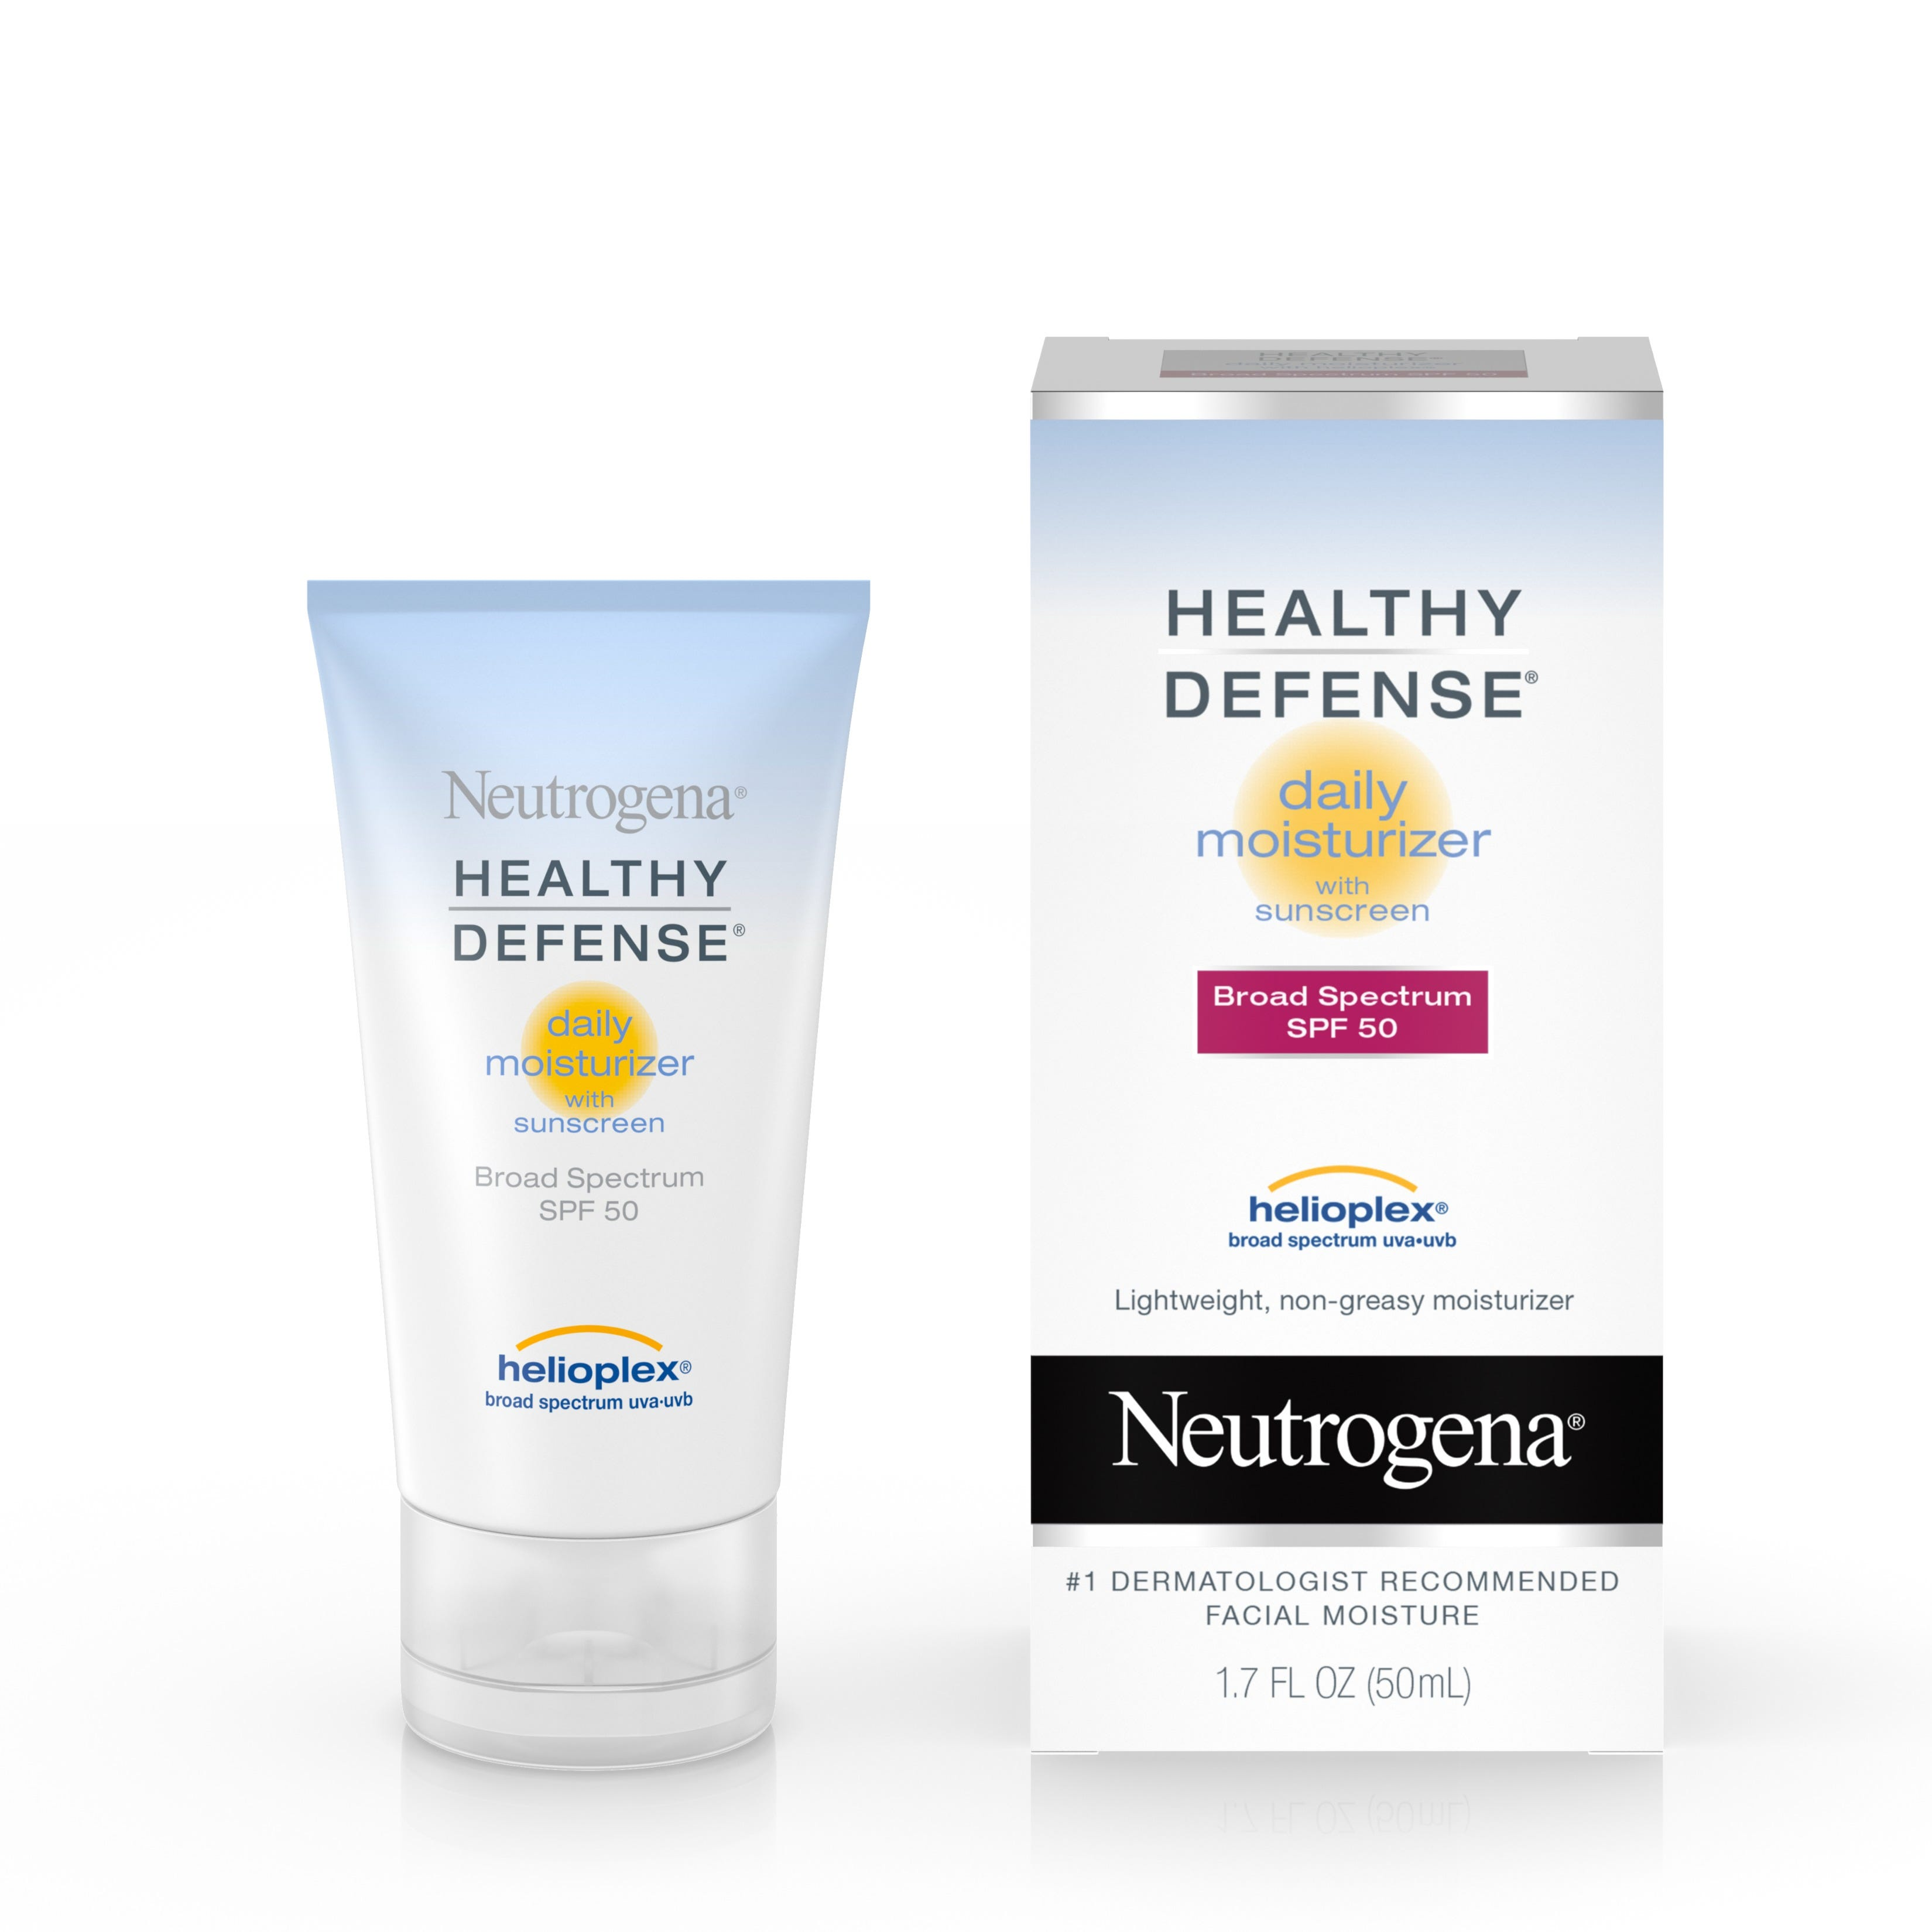 Healthy Defense Daily Face Moisturizer with SPF 50